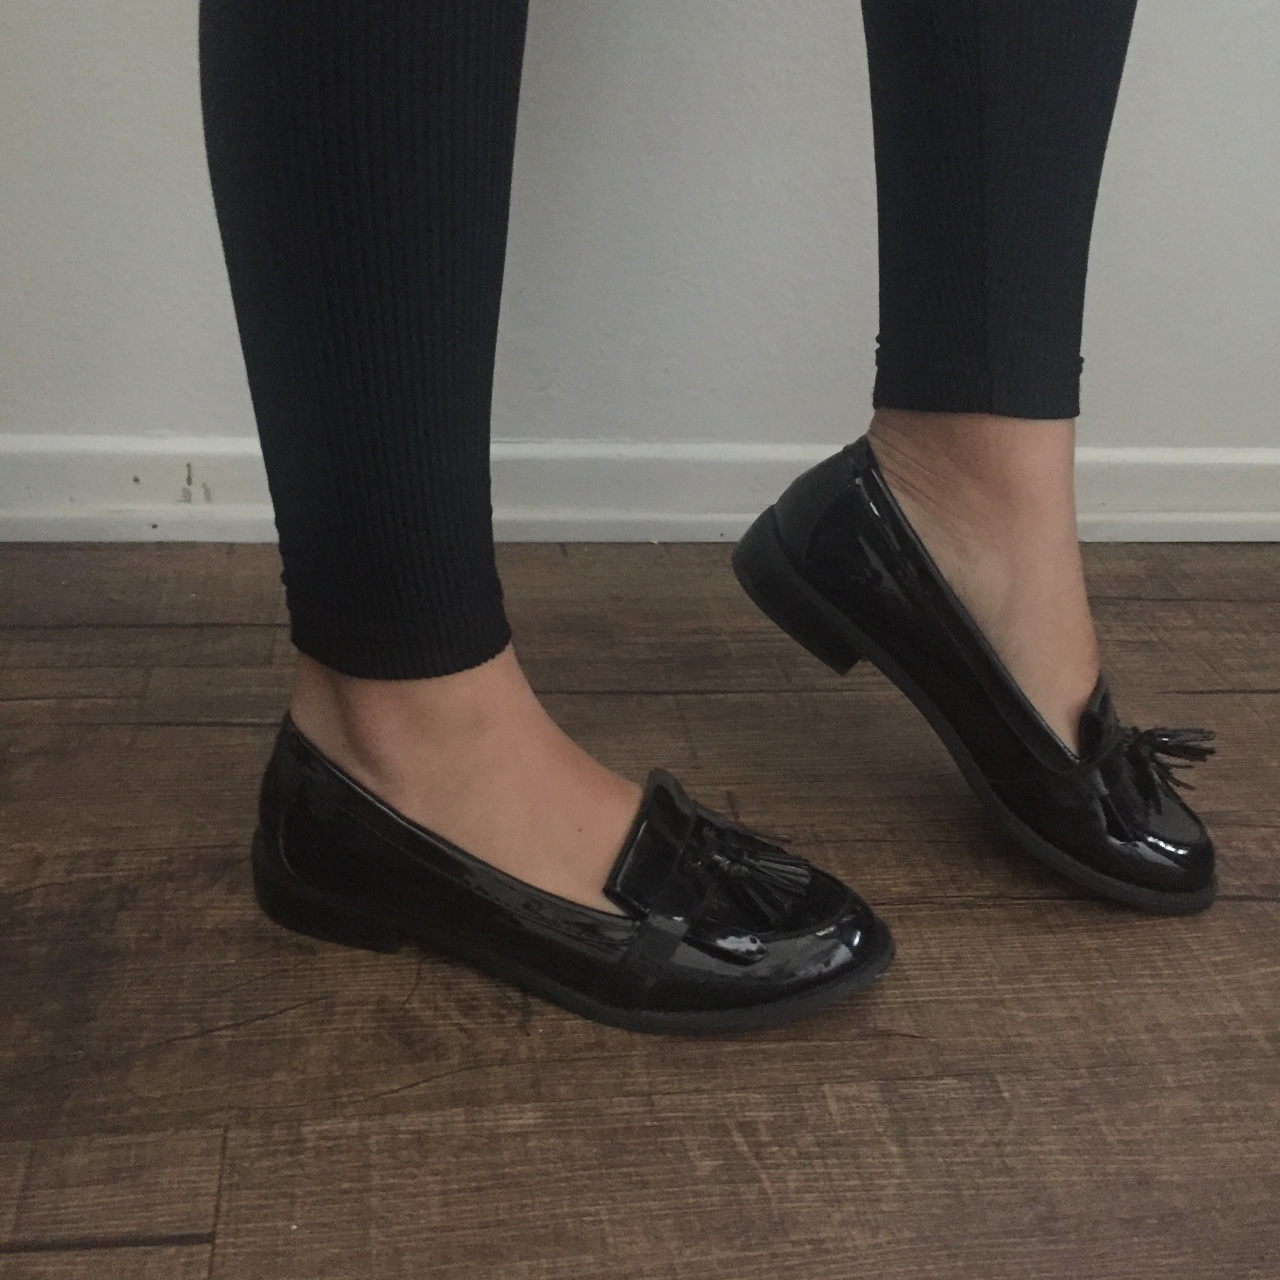 Patent leather black loafers ⚫️ These